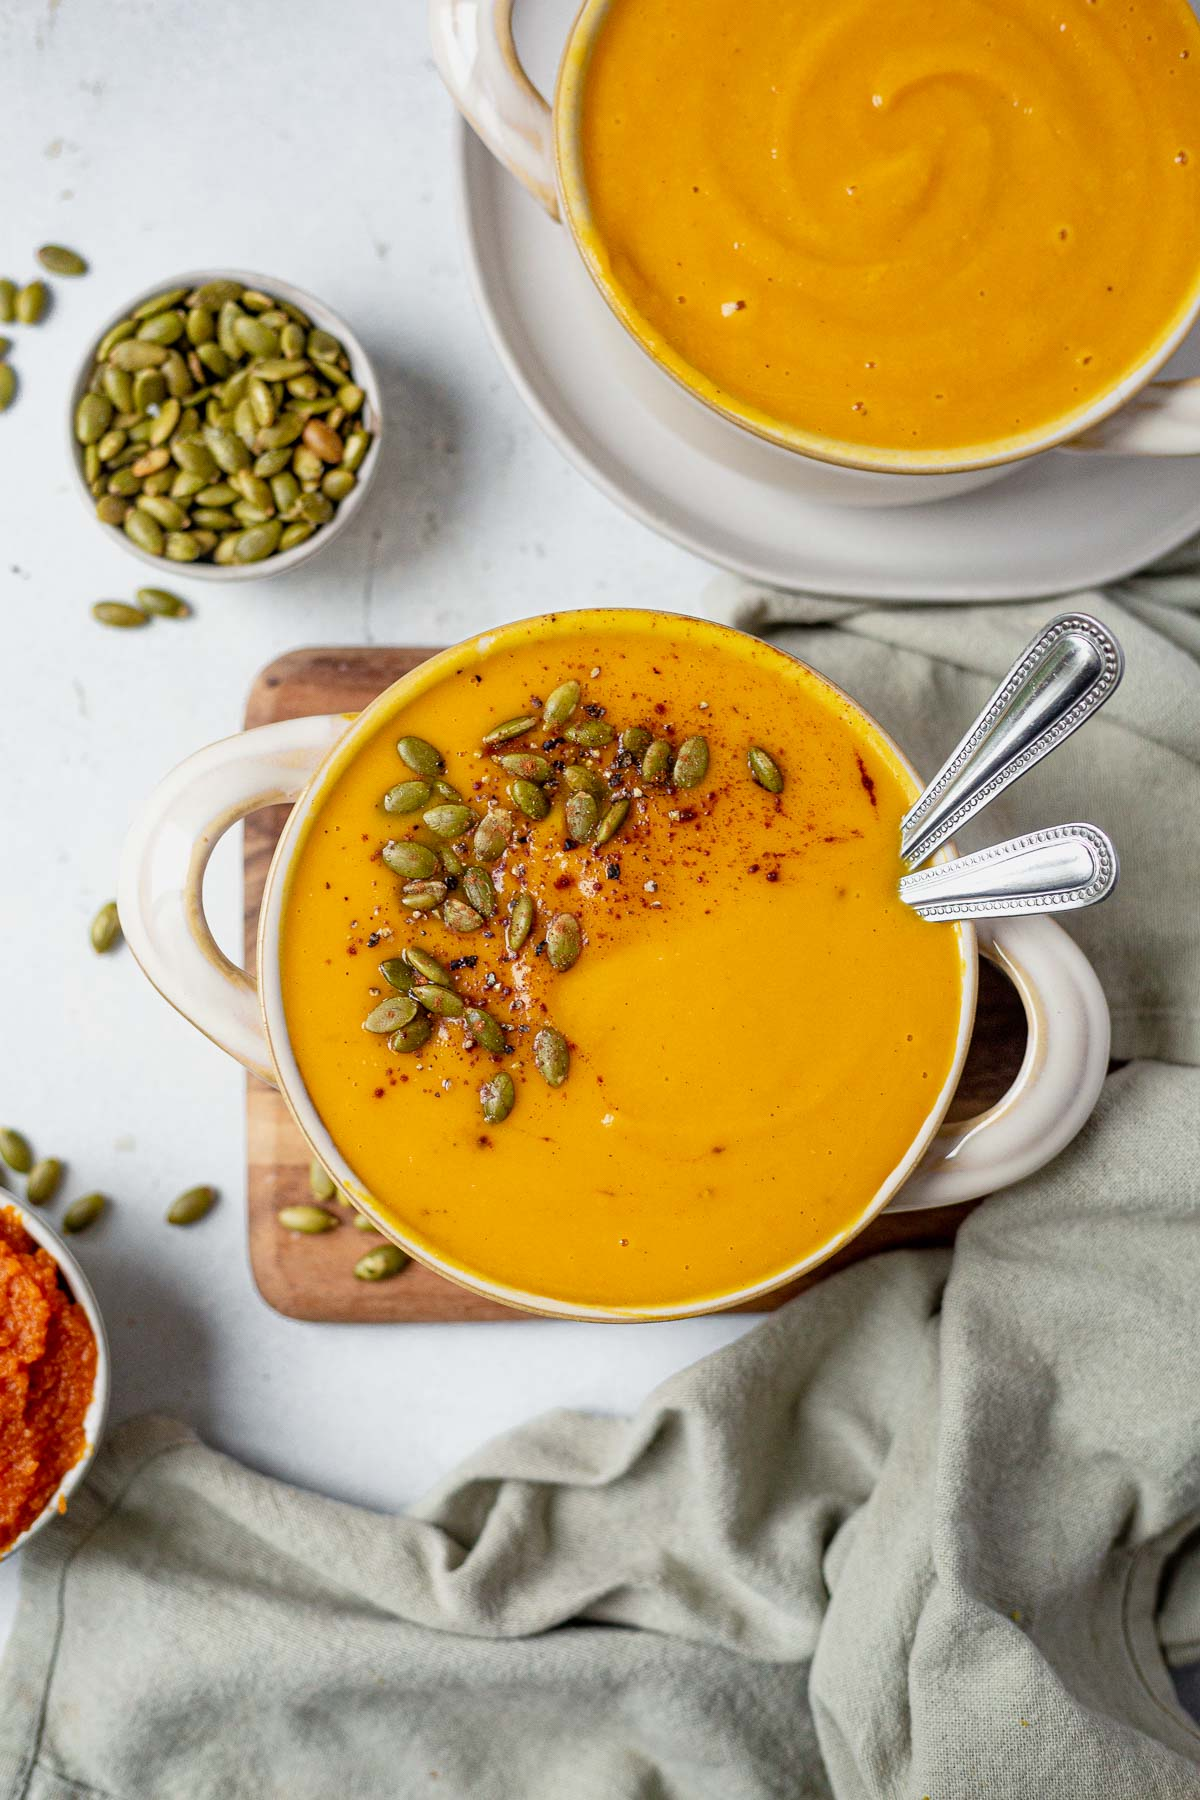 copycat panera bread autumn squash soup reipe in a soup bowl with two spoons